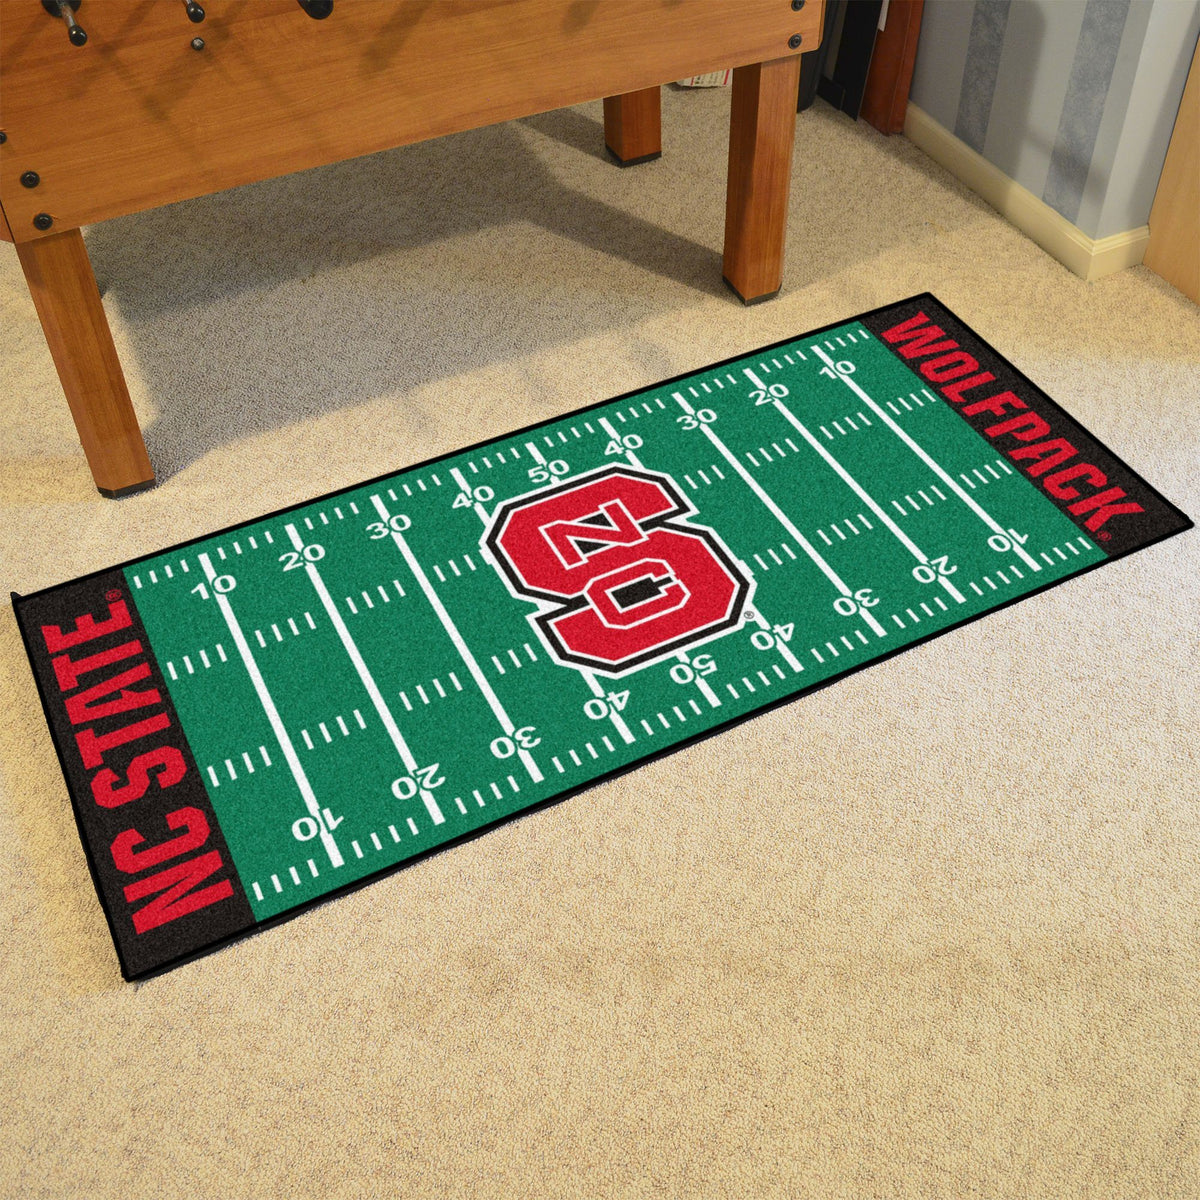 Collegiate - Football Field Runner Collegiate Mats, Rectangular Mats, Football Field Runner, Collegiate, Home Fan Mats NC State